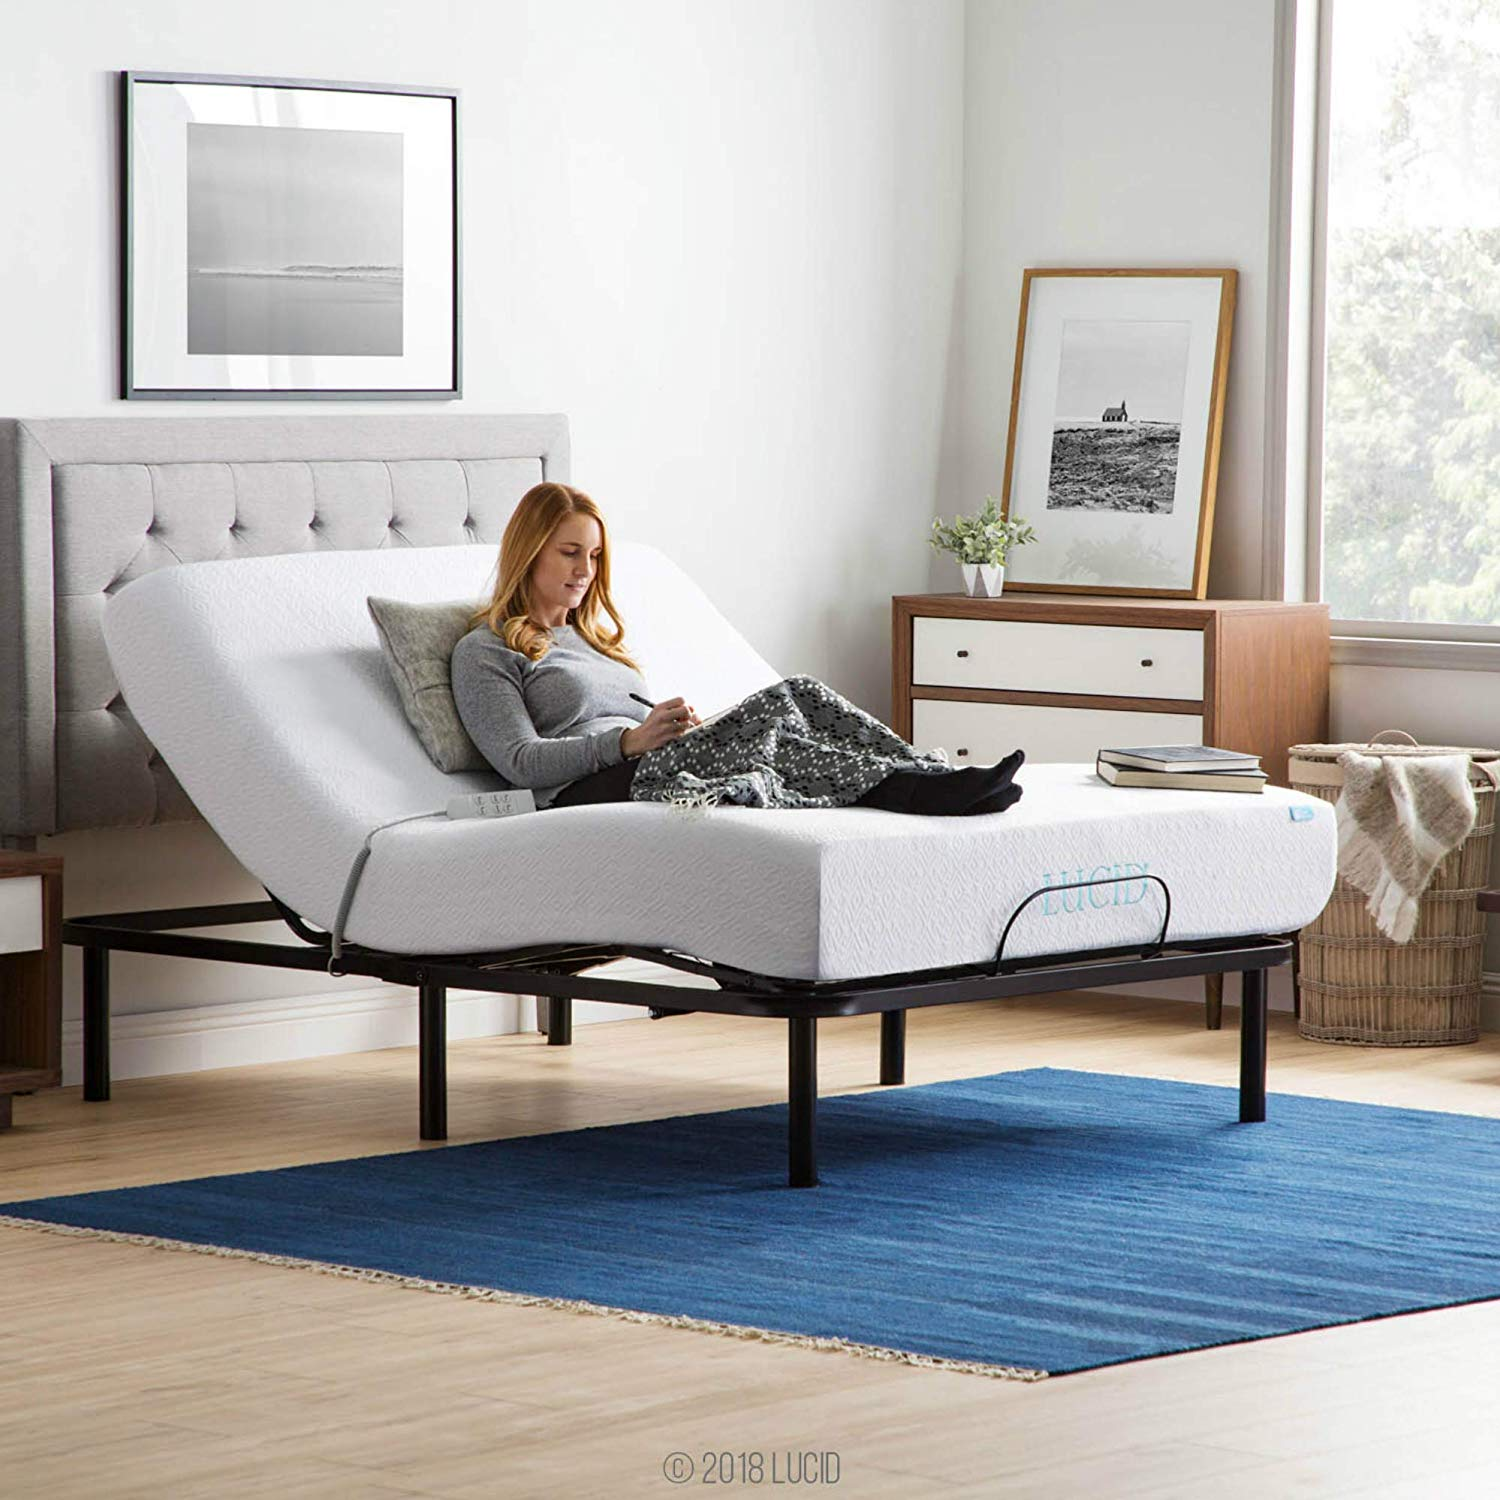 Split Queen Adjustable Bed >> Top 5 Best Split Queen Adjustable Beds In 2020 Alltopguide